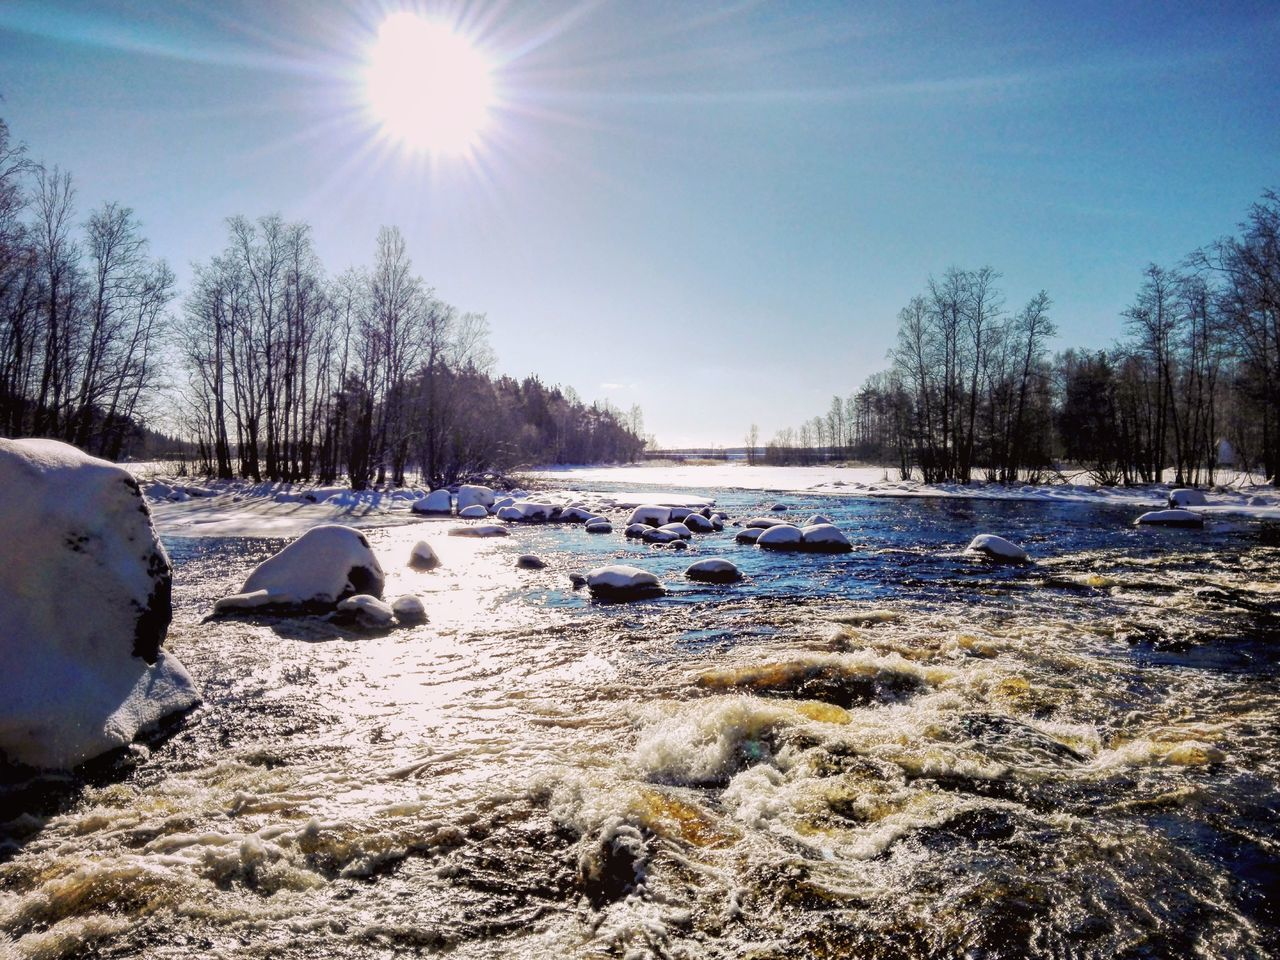 Nice day Snow Winter Sunlight Outdoors Nature Landscape Naturebeauty Weather Naturelovers Finnish Nature Photography Photographer Nature Photography Landscape_photography Colourful Naturepath Flowing Water Daytime Sky